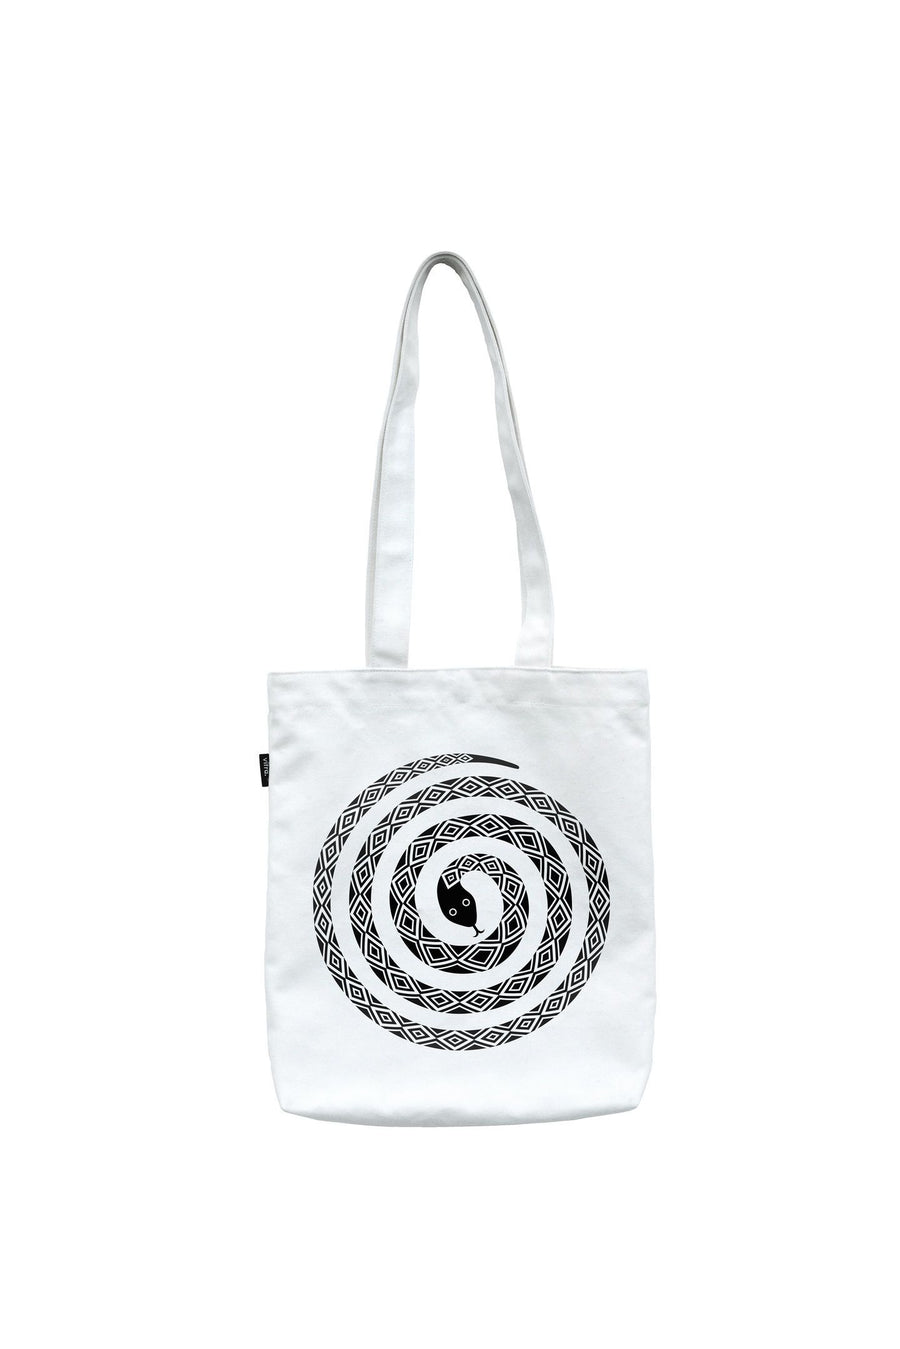 Vitra, Snake Graphic Bag, - Placewares